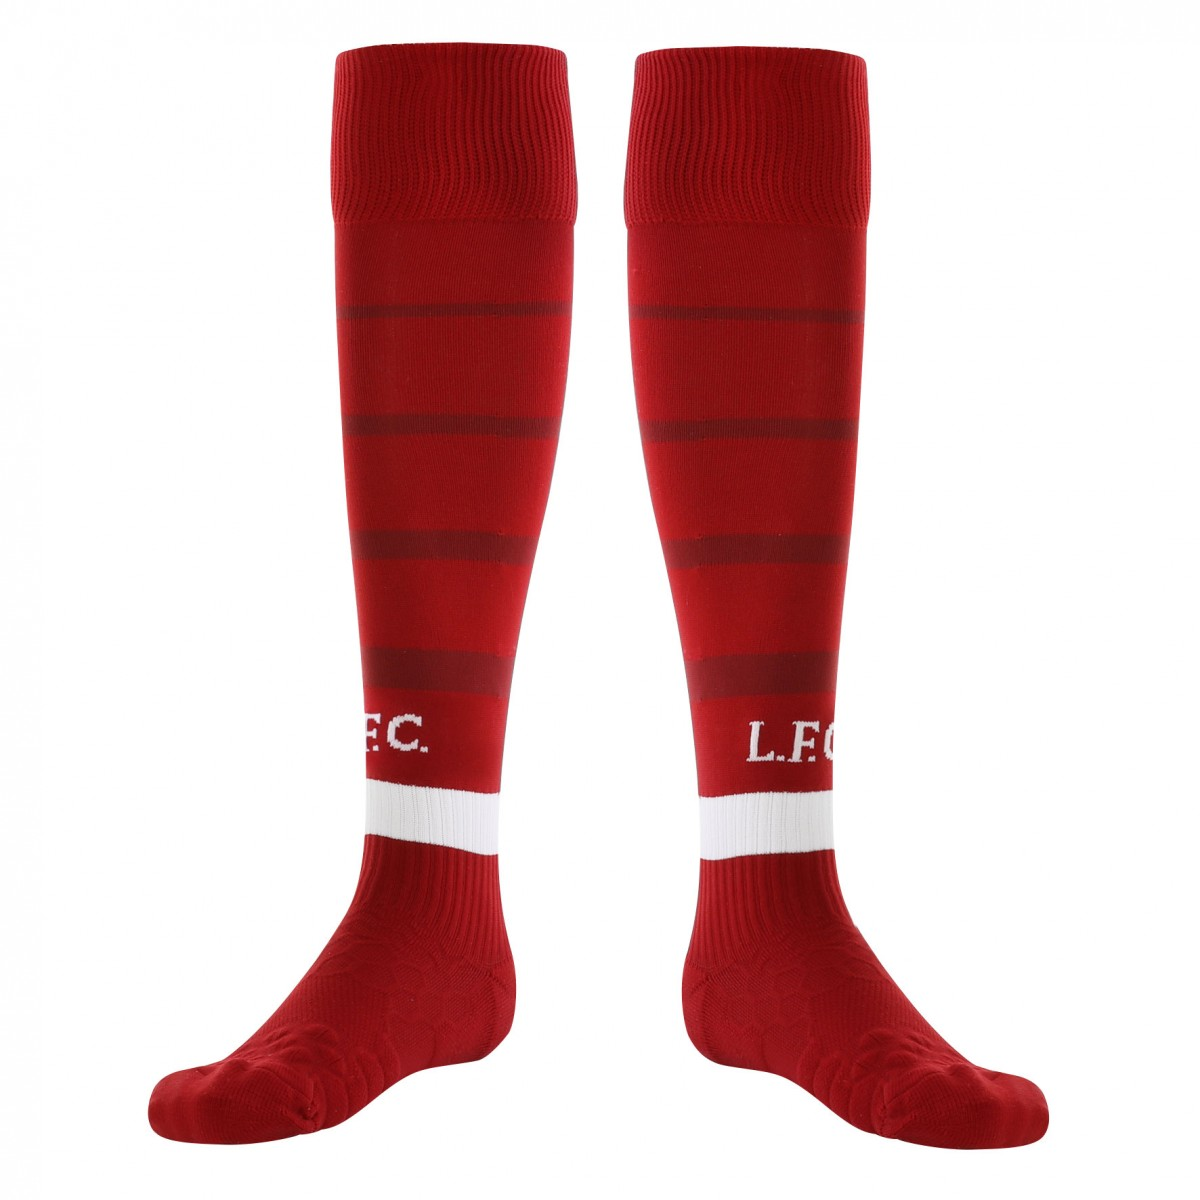 e41509da55fa5 Liverpool 2018-2019 Home Socks (Red) - Kids [JA830012] - $13.81 Teamzo.com